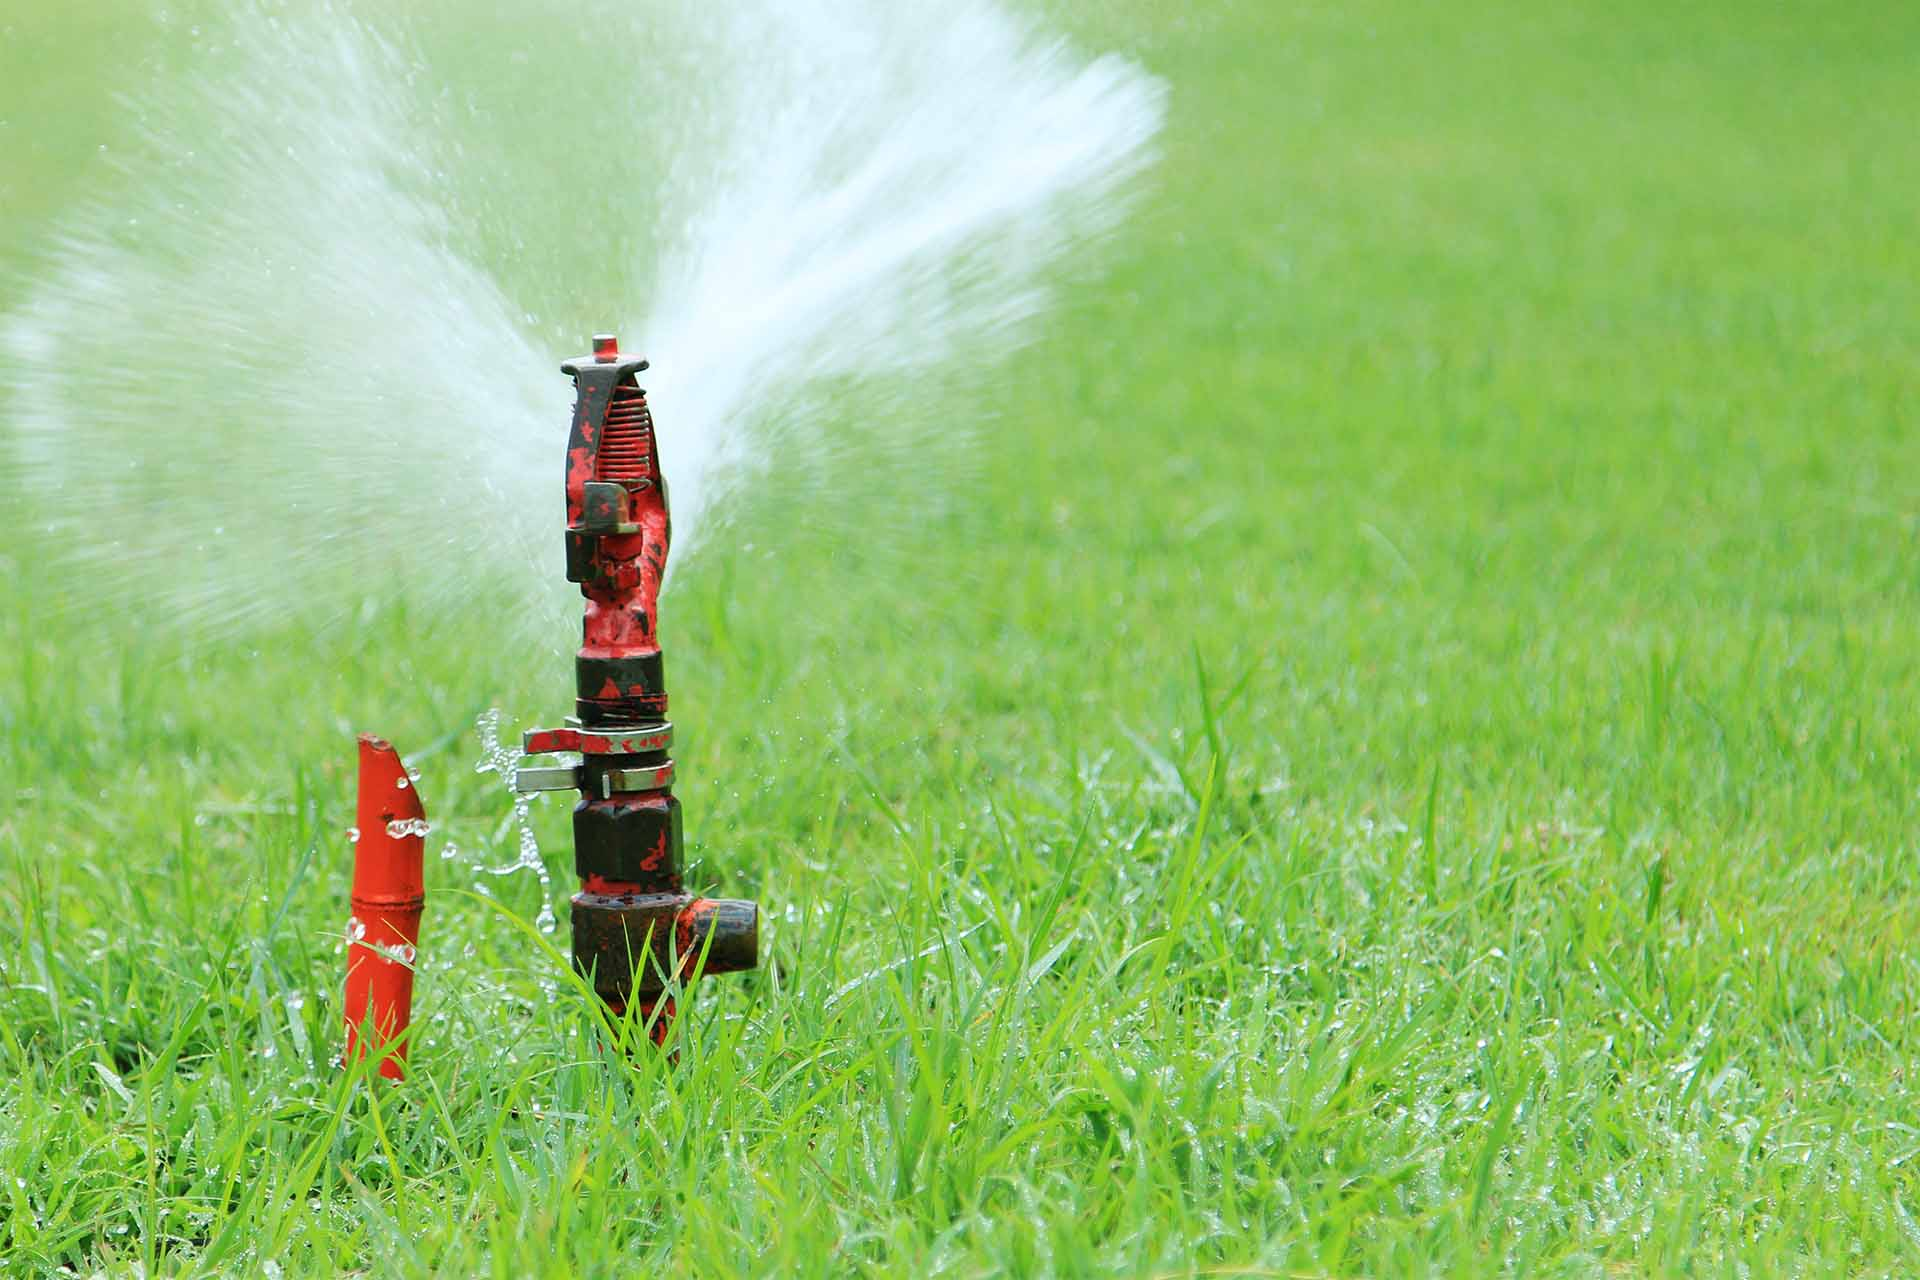 What do I need to know before installing a sprinkler system?